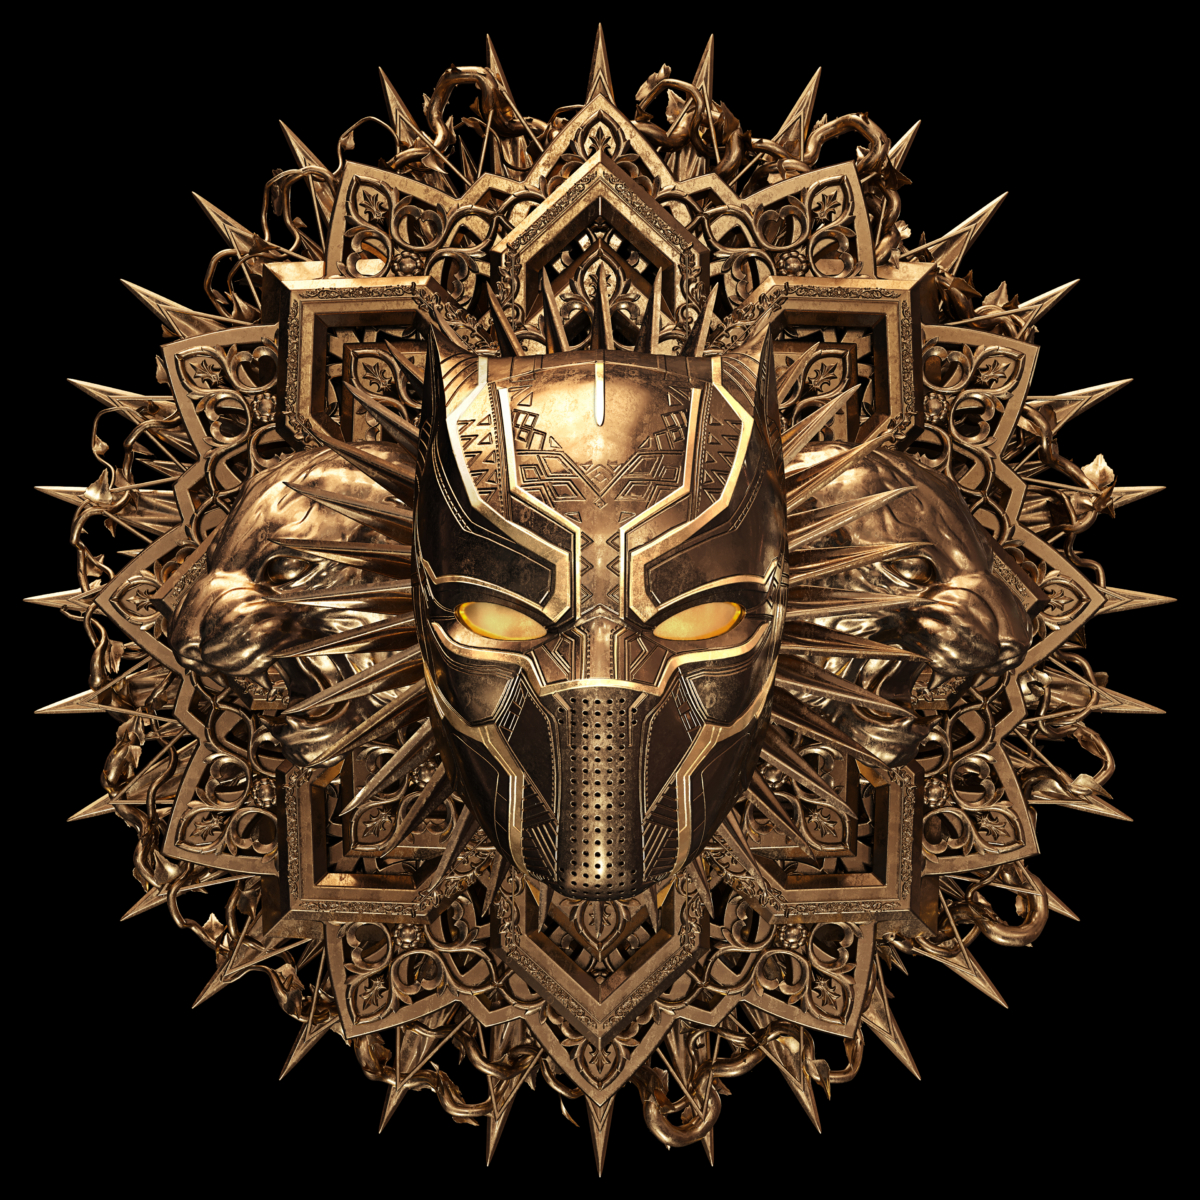 Mind Blowing 3d Wallpapers Amazing Digital Illustrations For The Marvel Black Panther